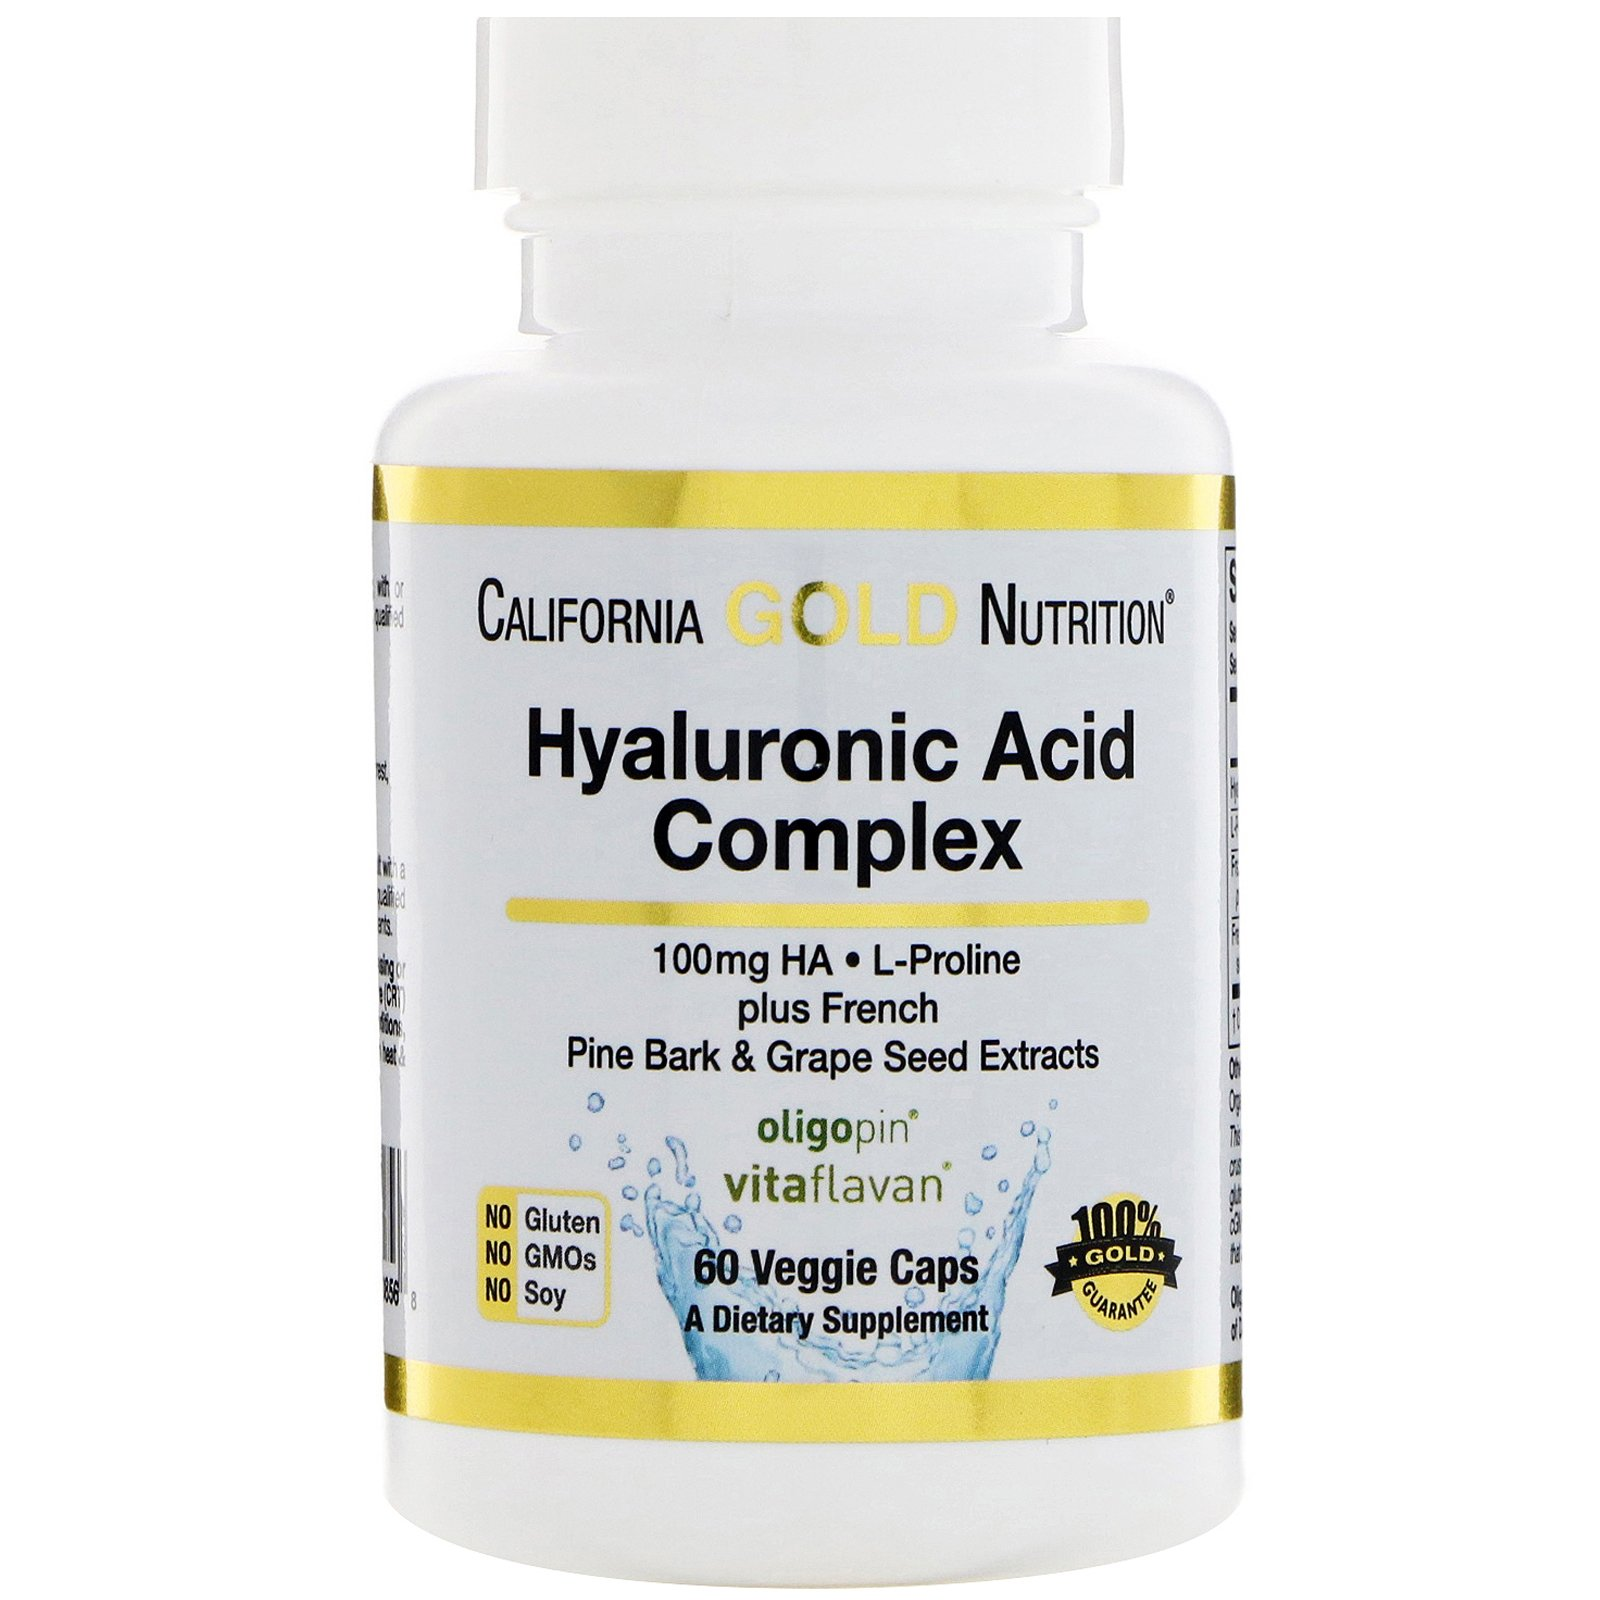 California Gold Nutrition, Hyaluronic Acid with L-Proline French Pine Bark Grape Seed Extracts, 100 mg, 60 Veggie Caps, Milk-Free, Fish Free, Gluten-Free, Peanut Free, Soy-Free, Wheat-Free, CGN by California Gold Nutrition